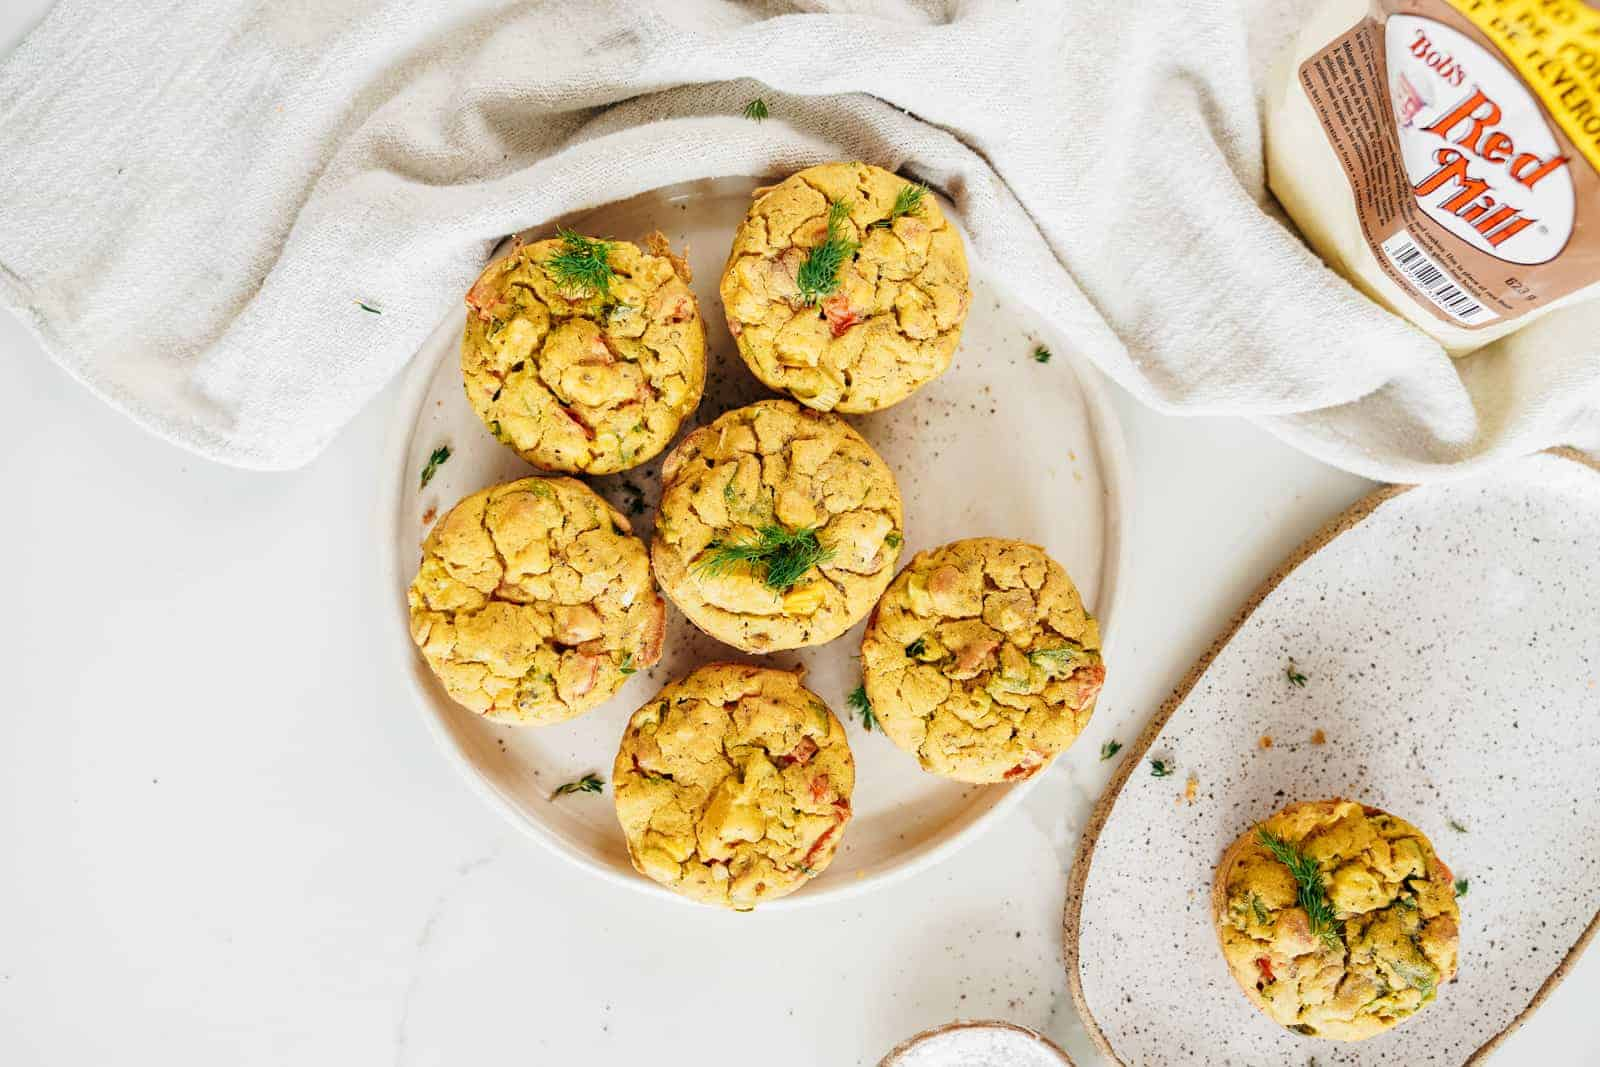 Vegan Chickpea Flour Muffins sitting on a plate with Bob's Red Mill flour in the background.